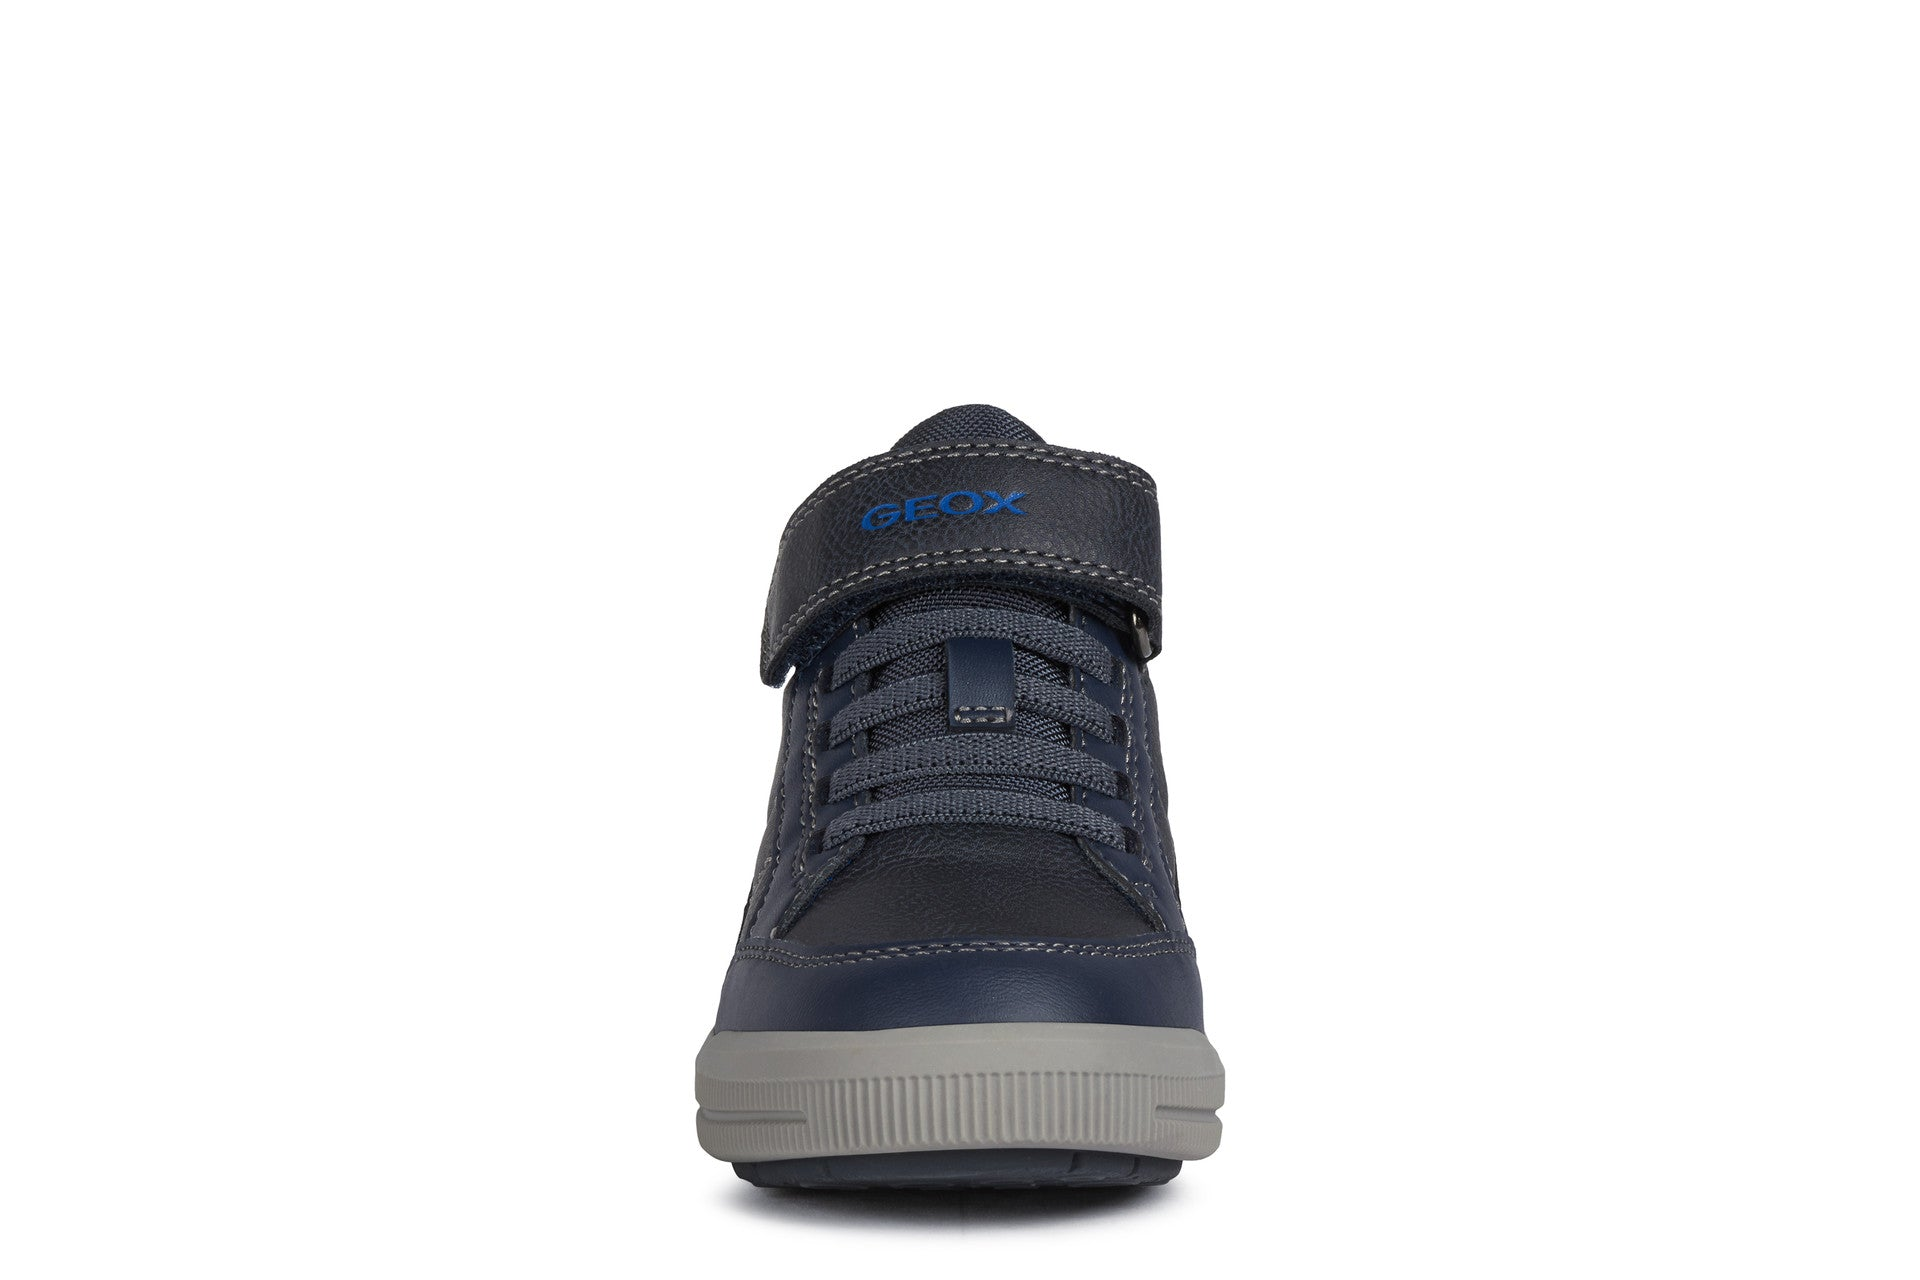 Navy Military High Top Sneaker